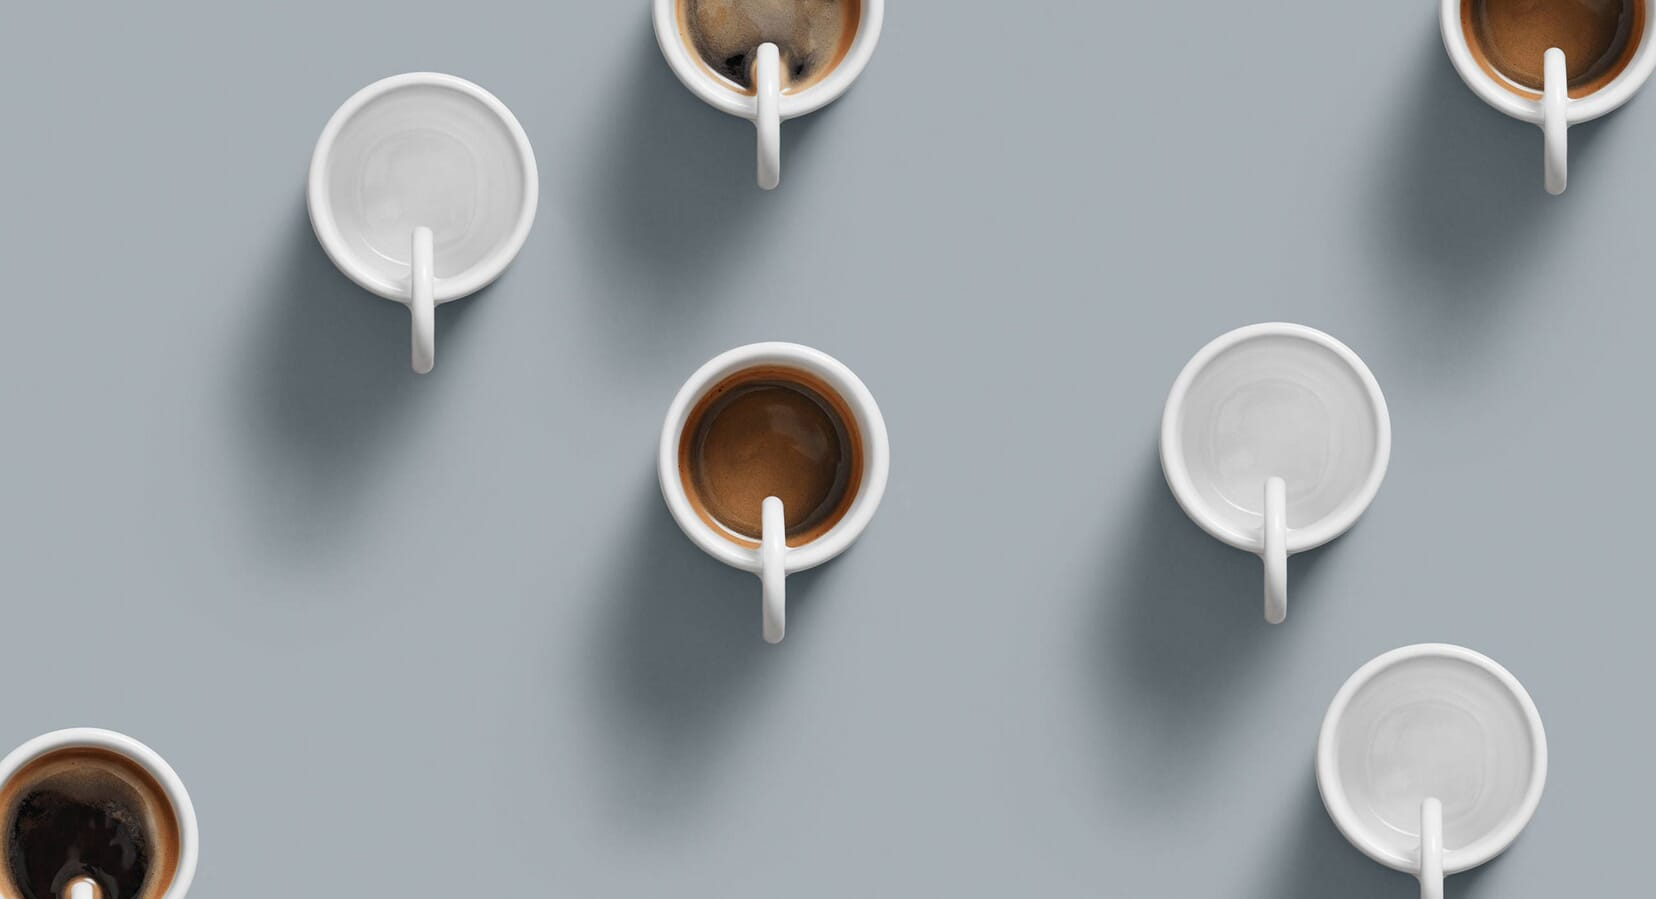 Kutarq Studio Joins Forces With OTHR For The Cerco Espresso Cup